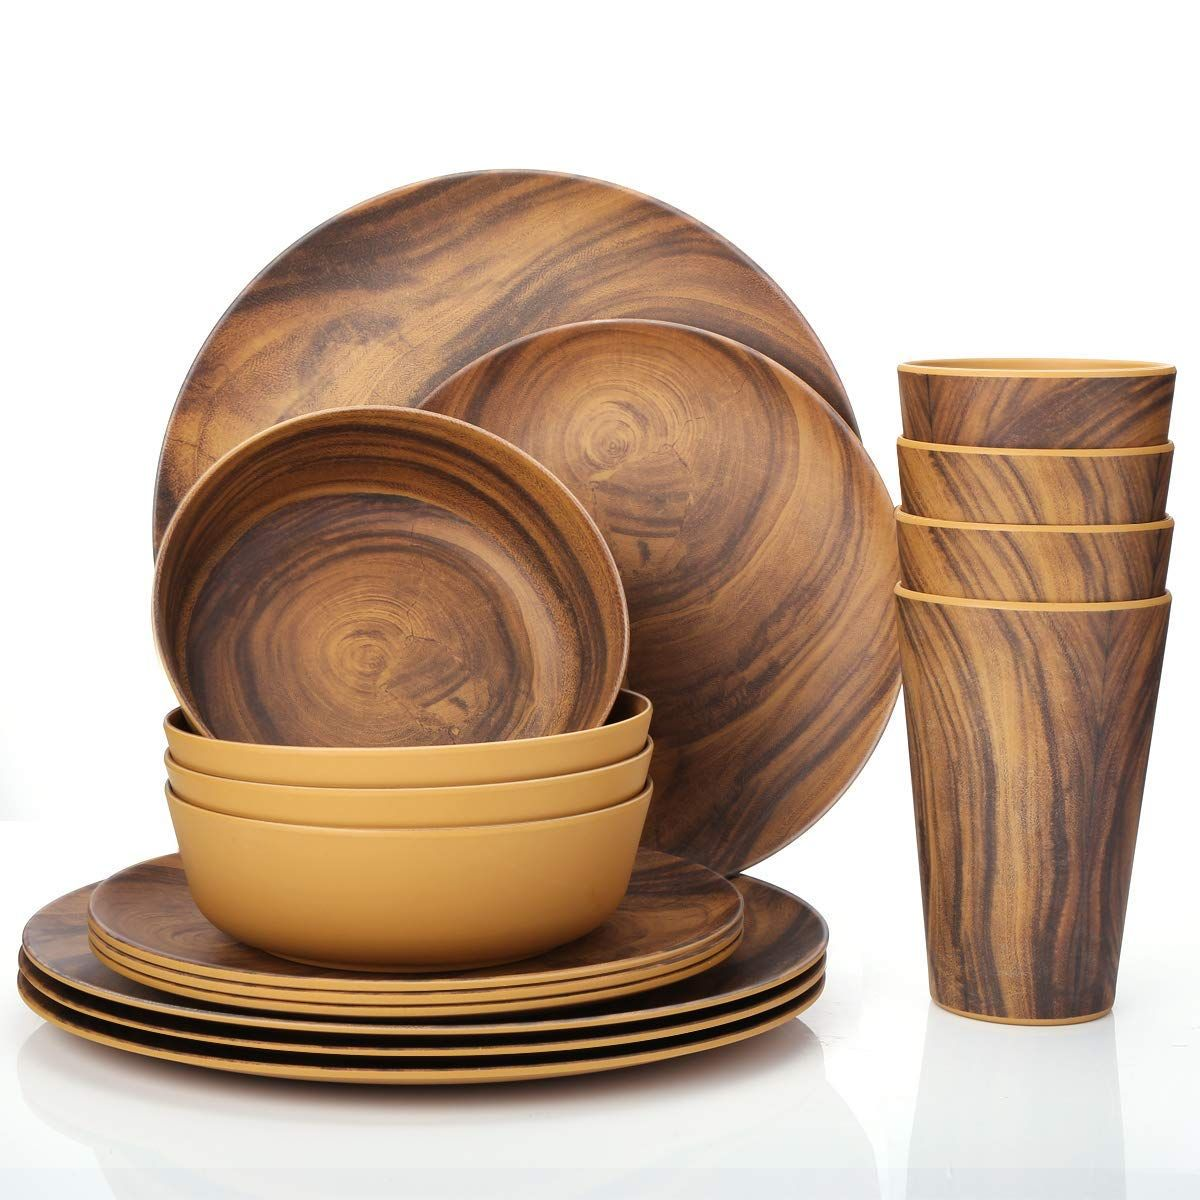 Wood Pattern Nordic Style Bamboo Fiber Food Plates High Quality Dinnerware Set For Camping And House Buy Bamboo Bamboo Tableware Dinnerware Set Bamboo Dishes